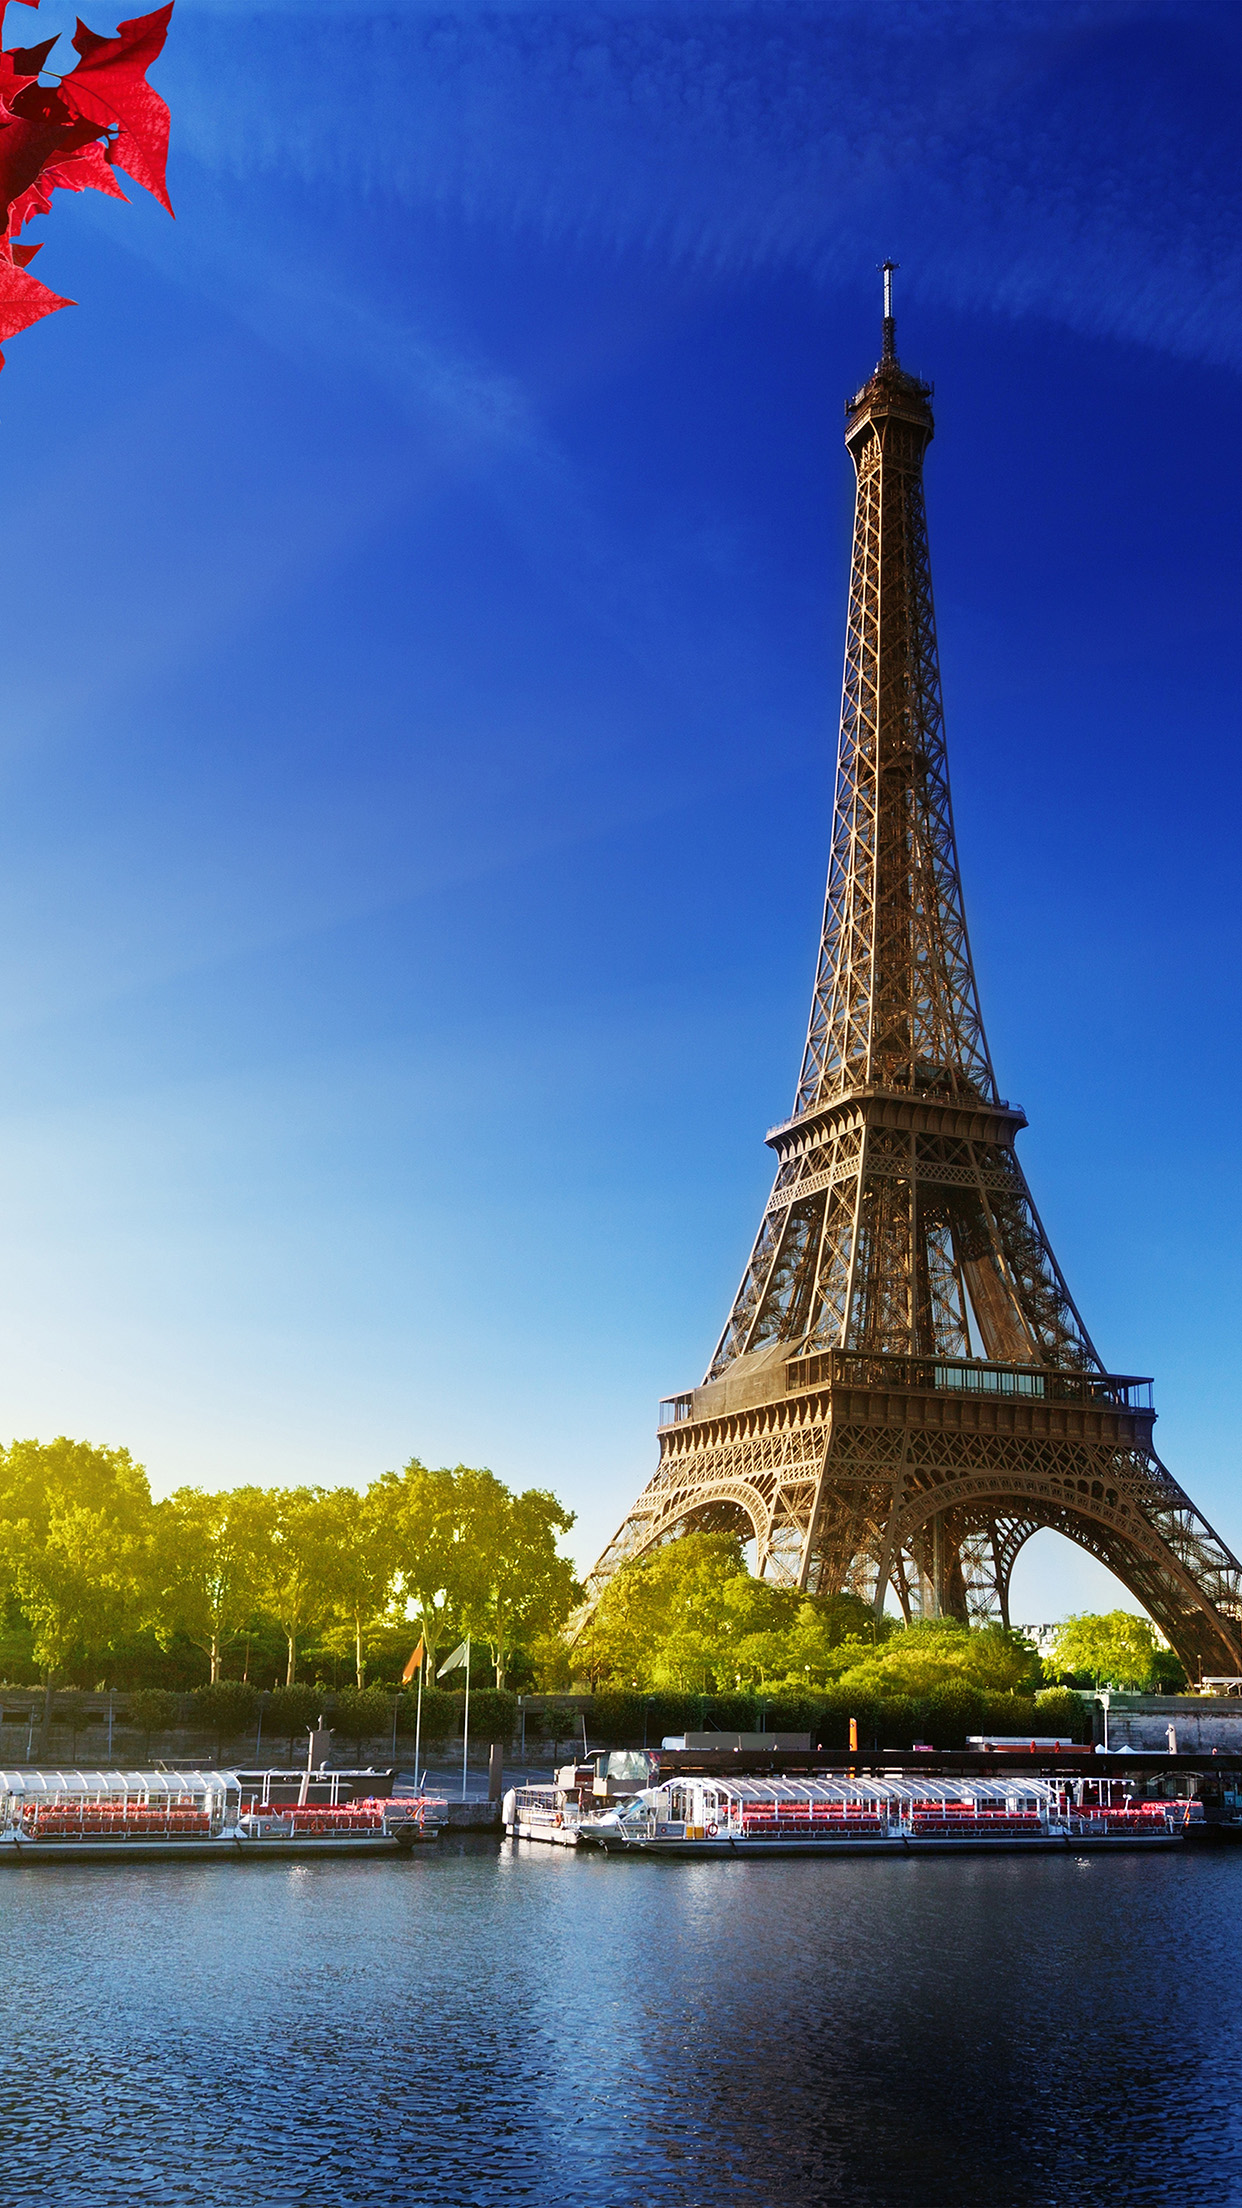 Papers Co Iphone Wallpaper Na16 Sky Blue Eiffel Tower Nature Paris City